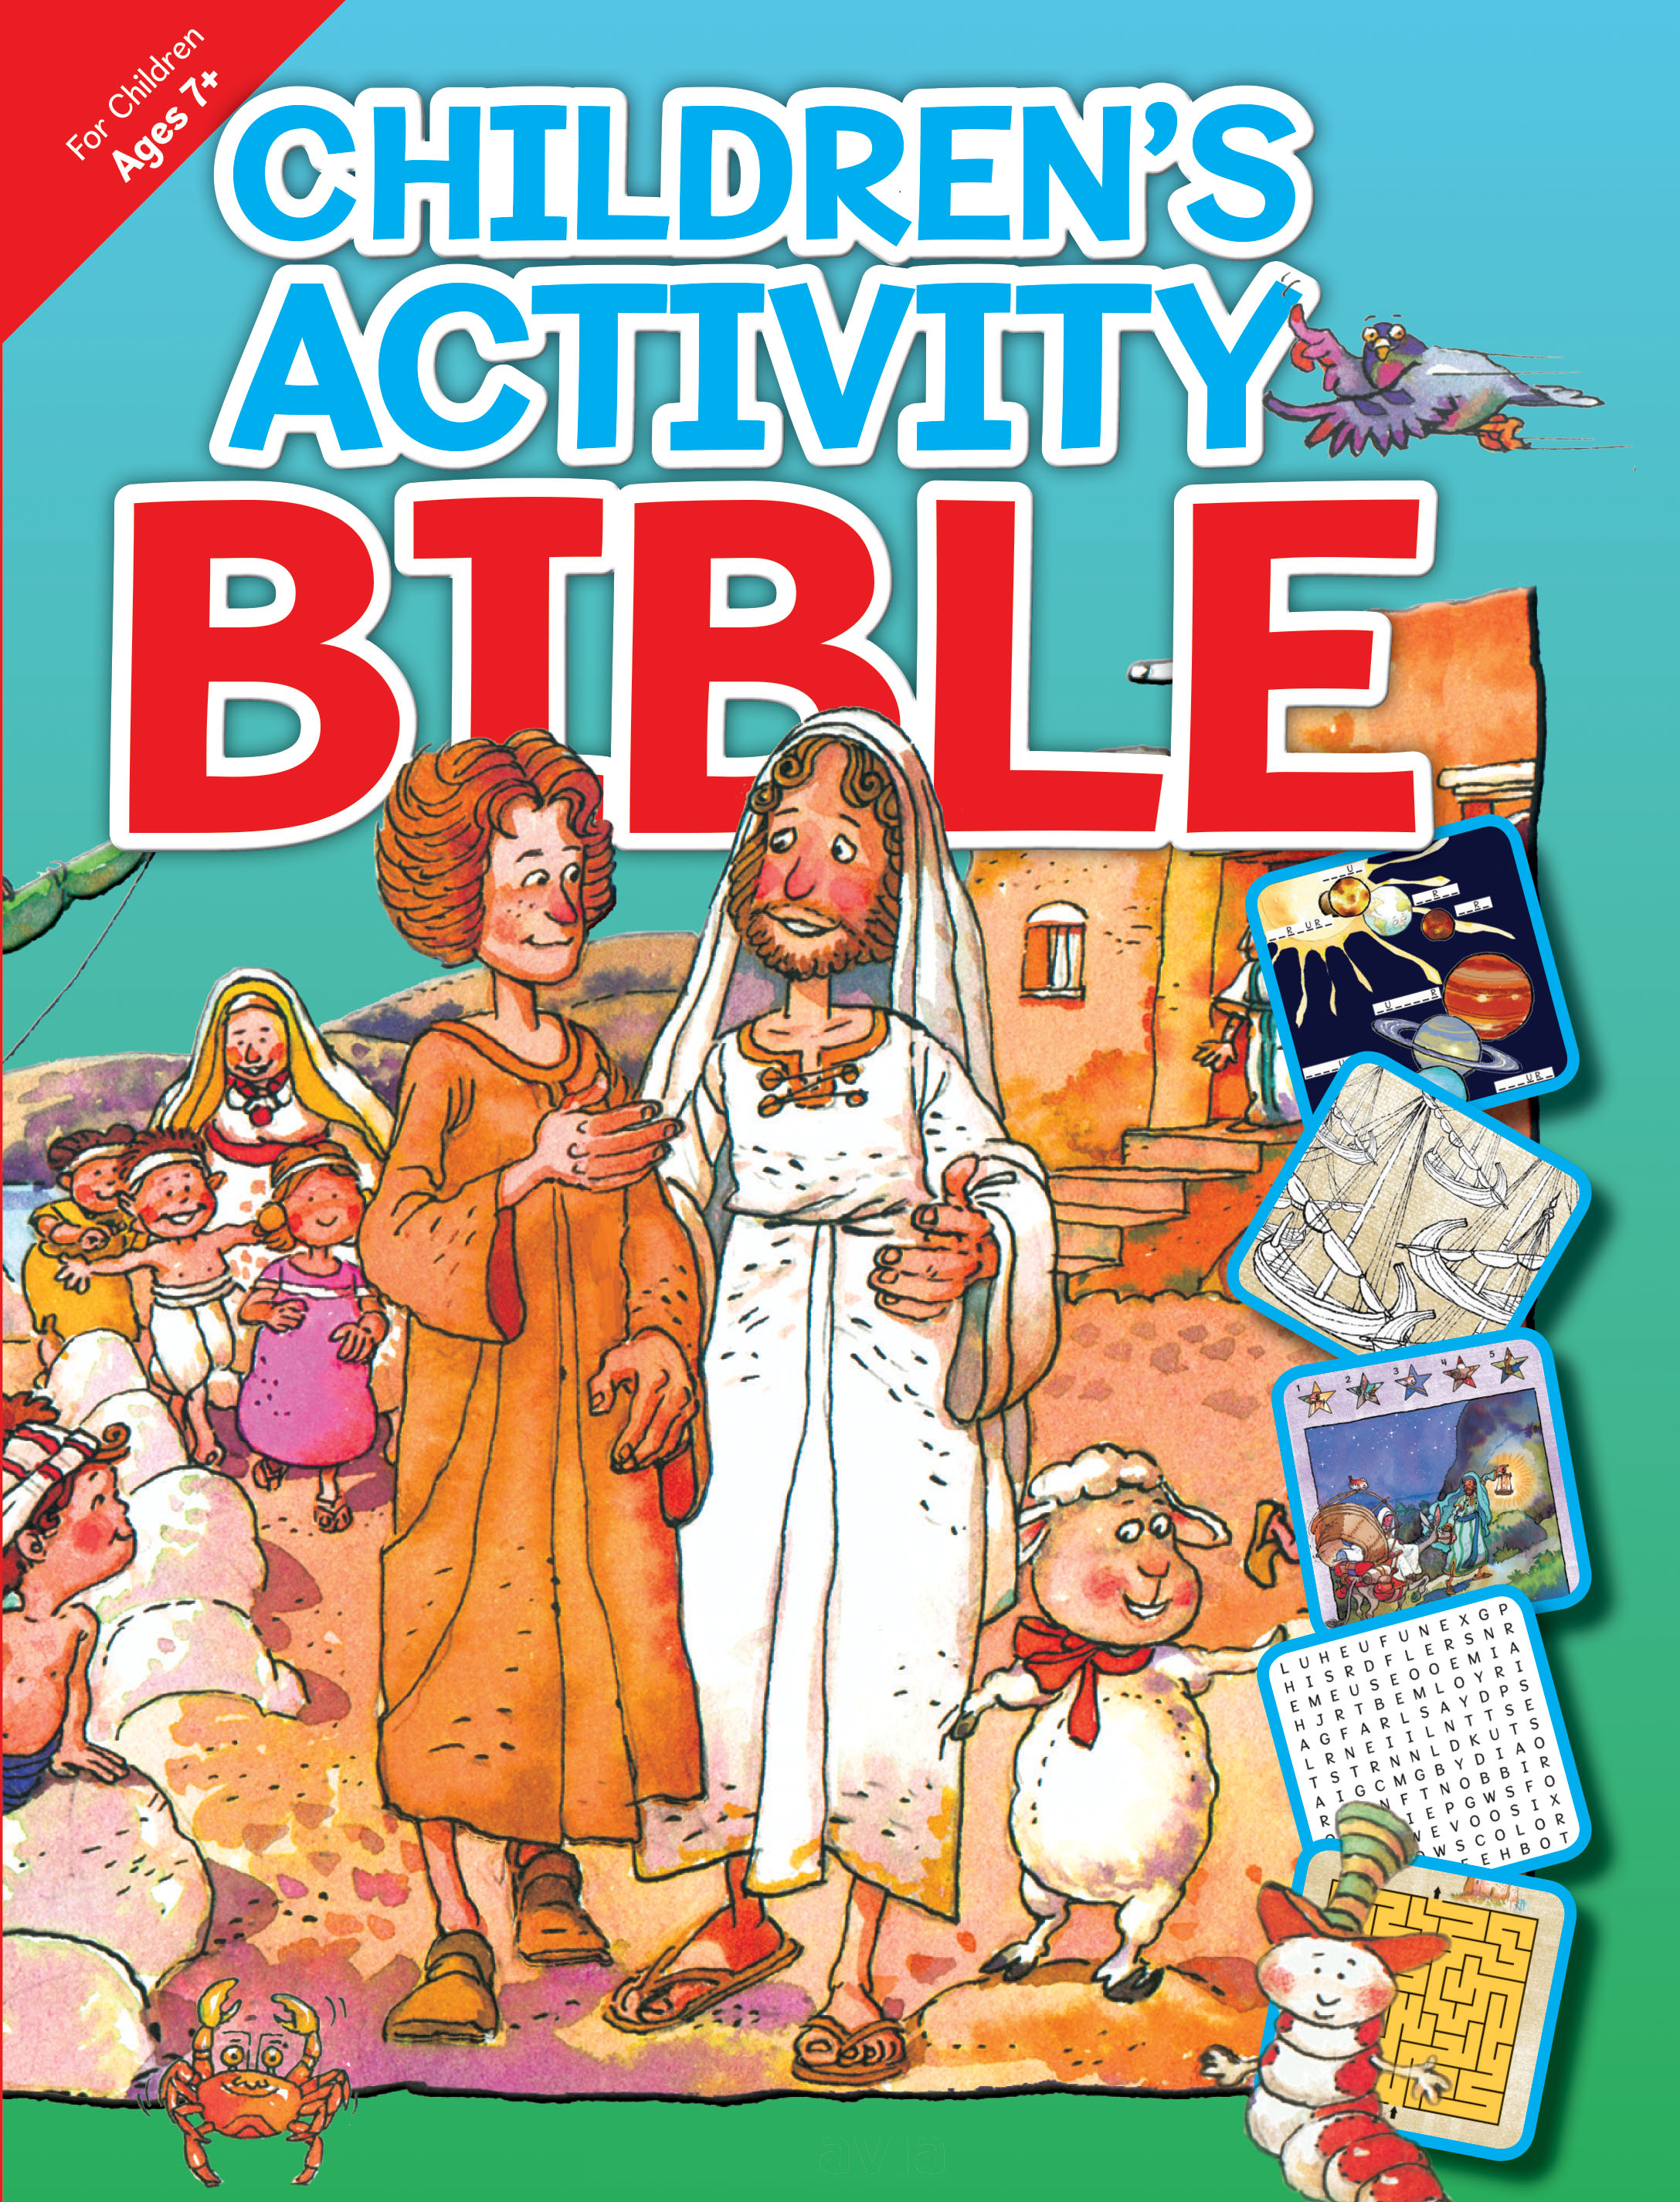 Children's Activity Bible - Ages 7 and up